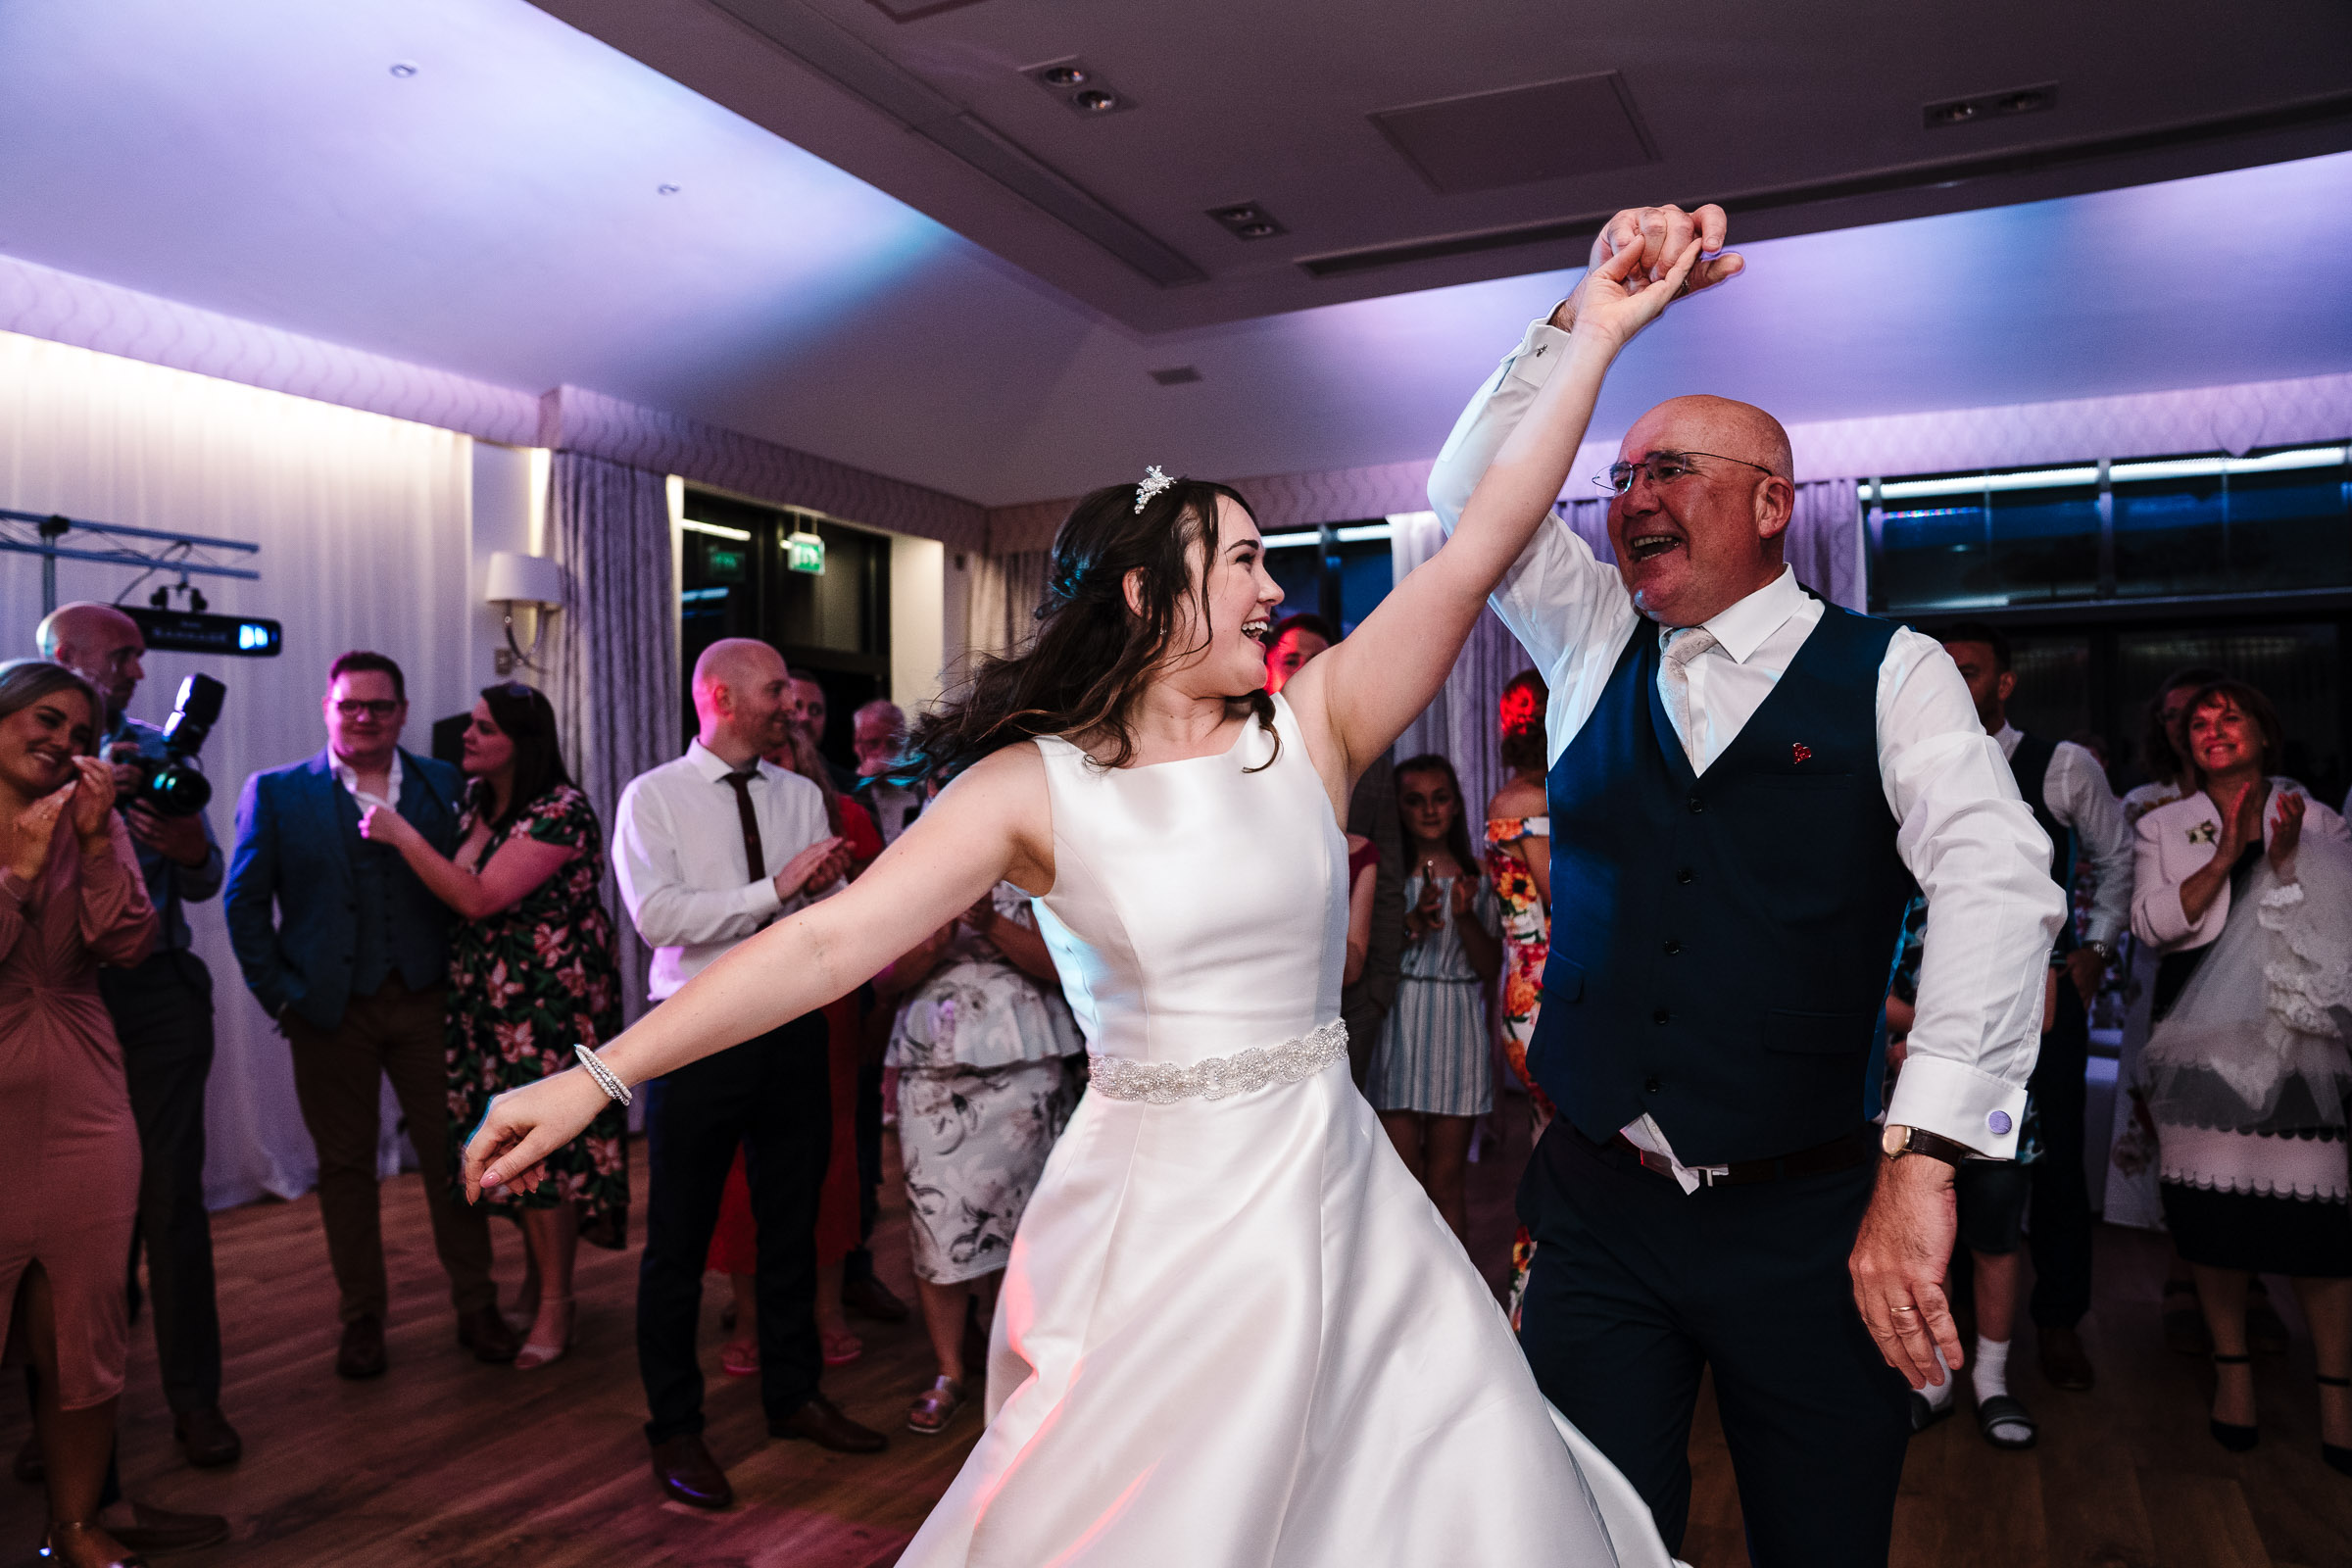 bride dancing with her dad at wedding